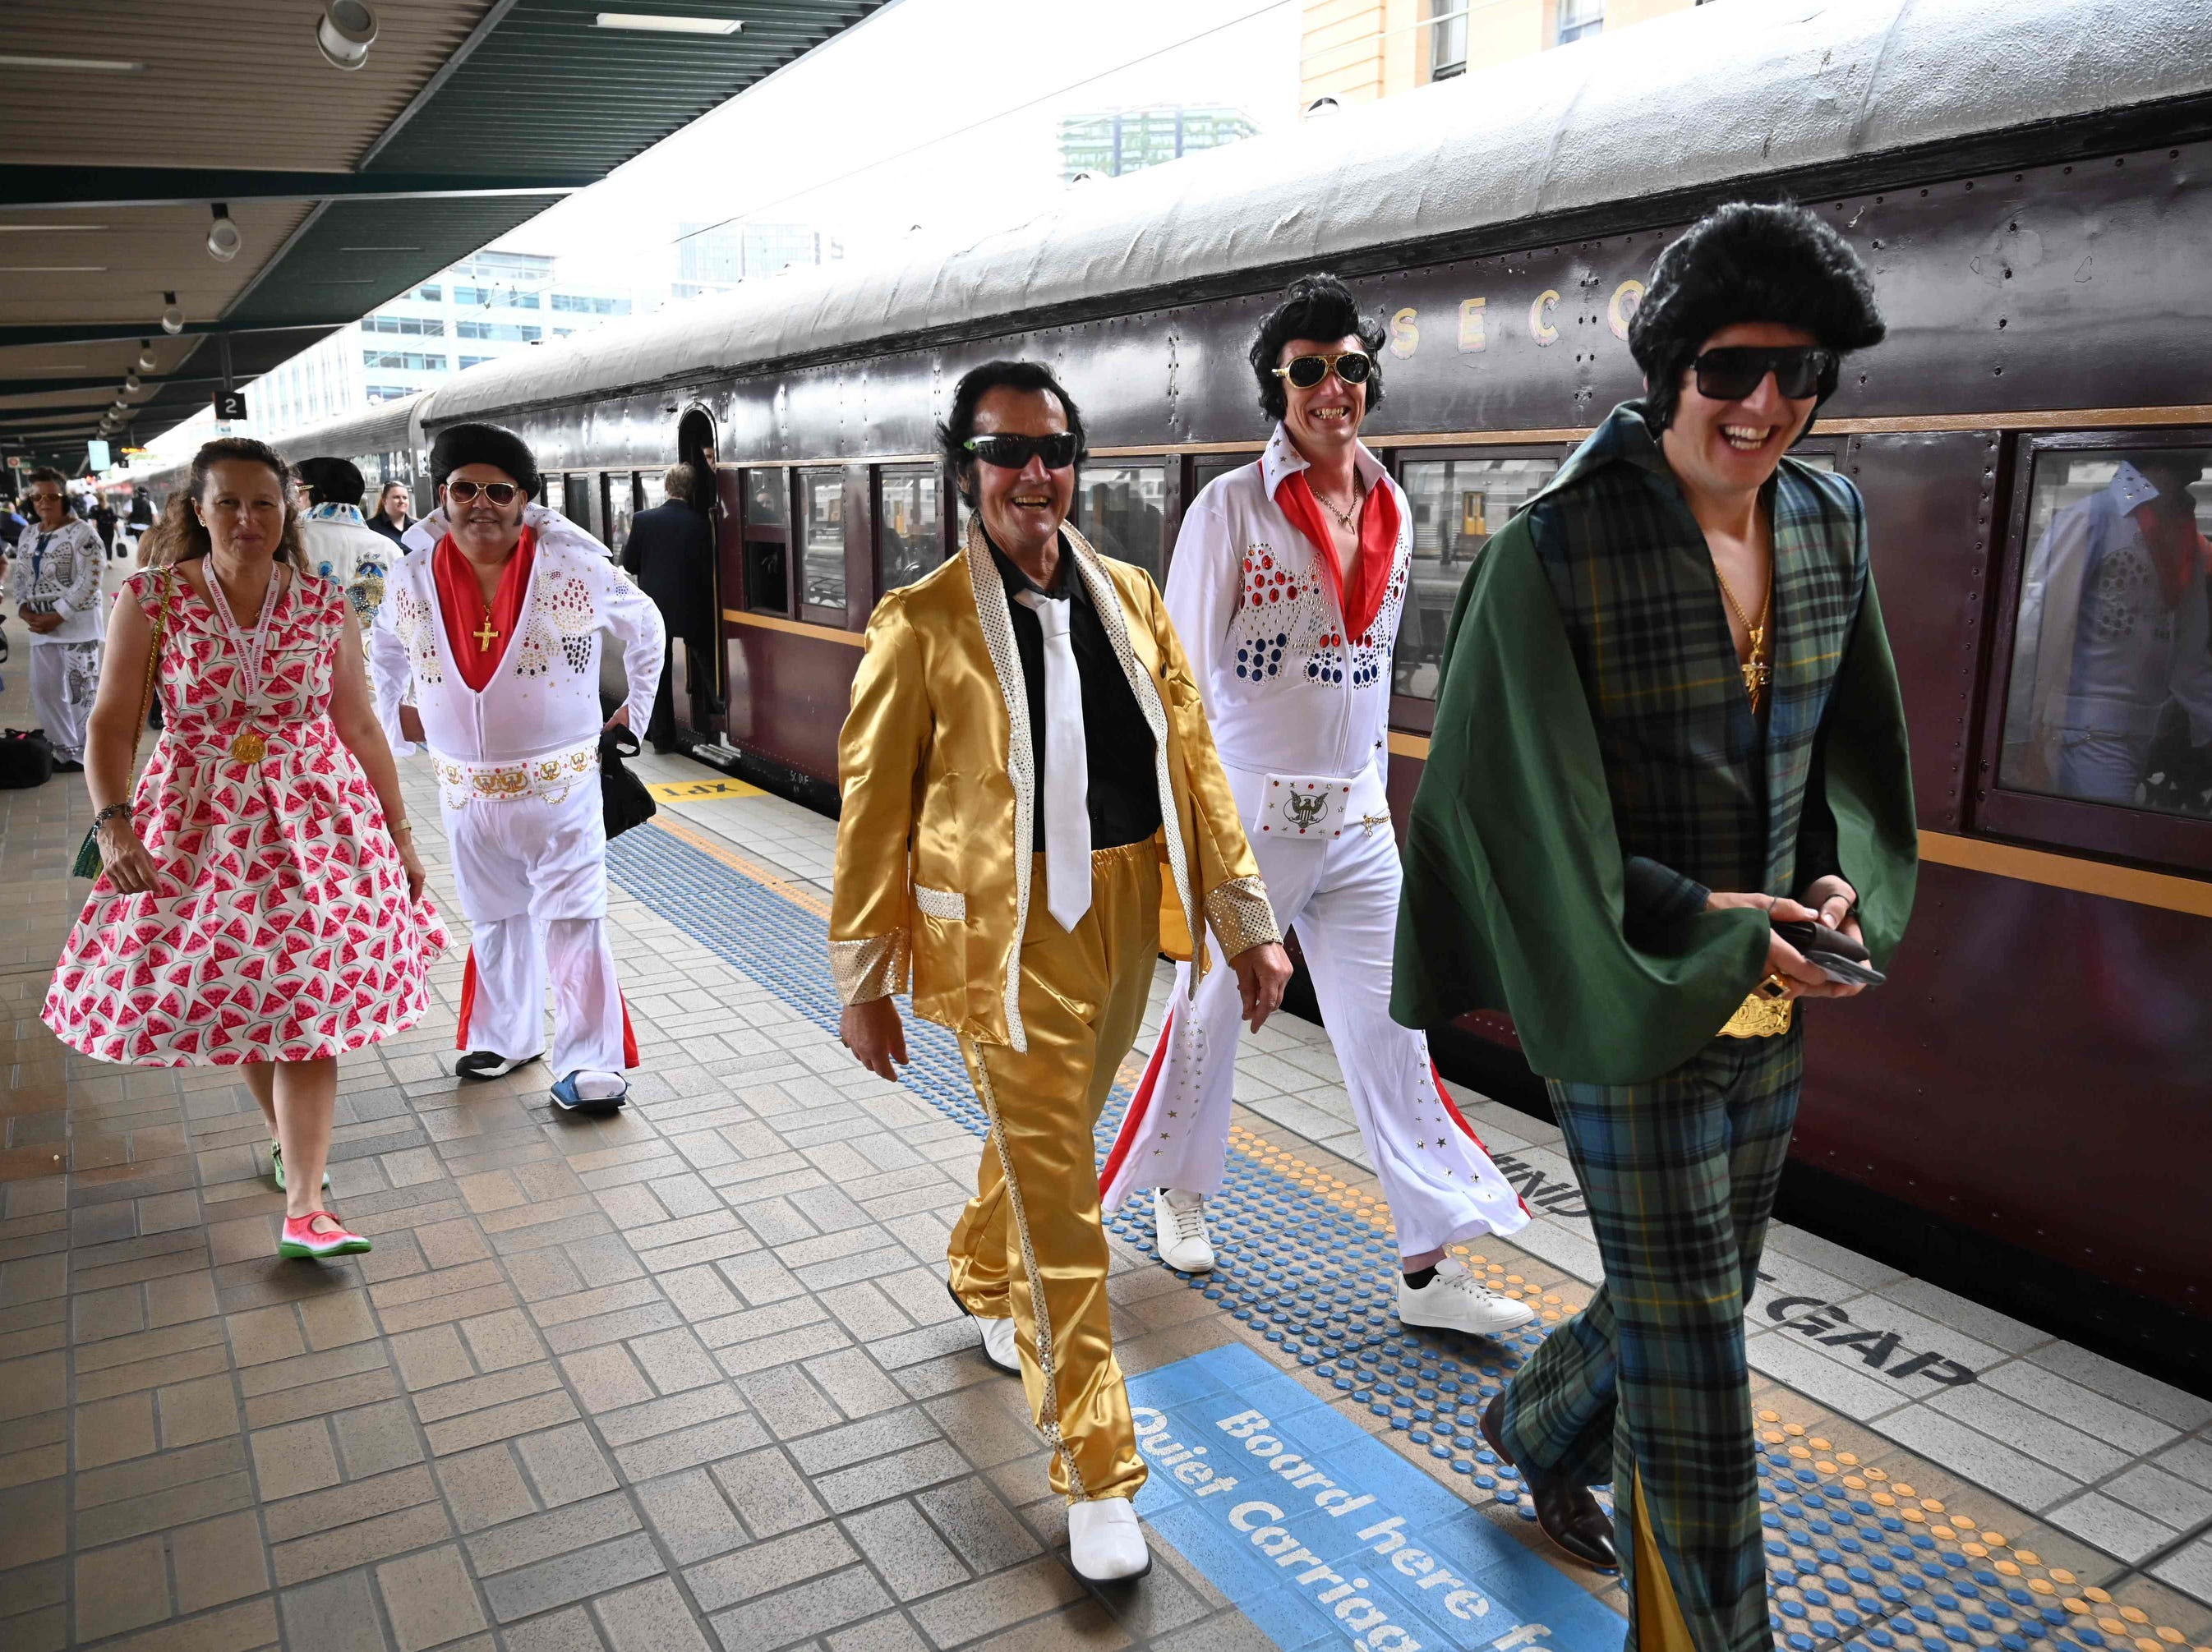 Elvis fans arrive at Central station before boarding a train to The Parkes Elvis Festival, in Sydney on Thursday.